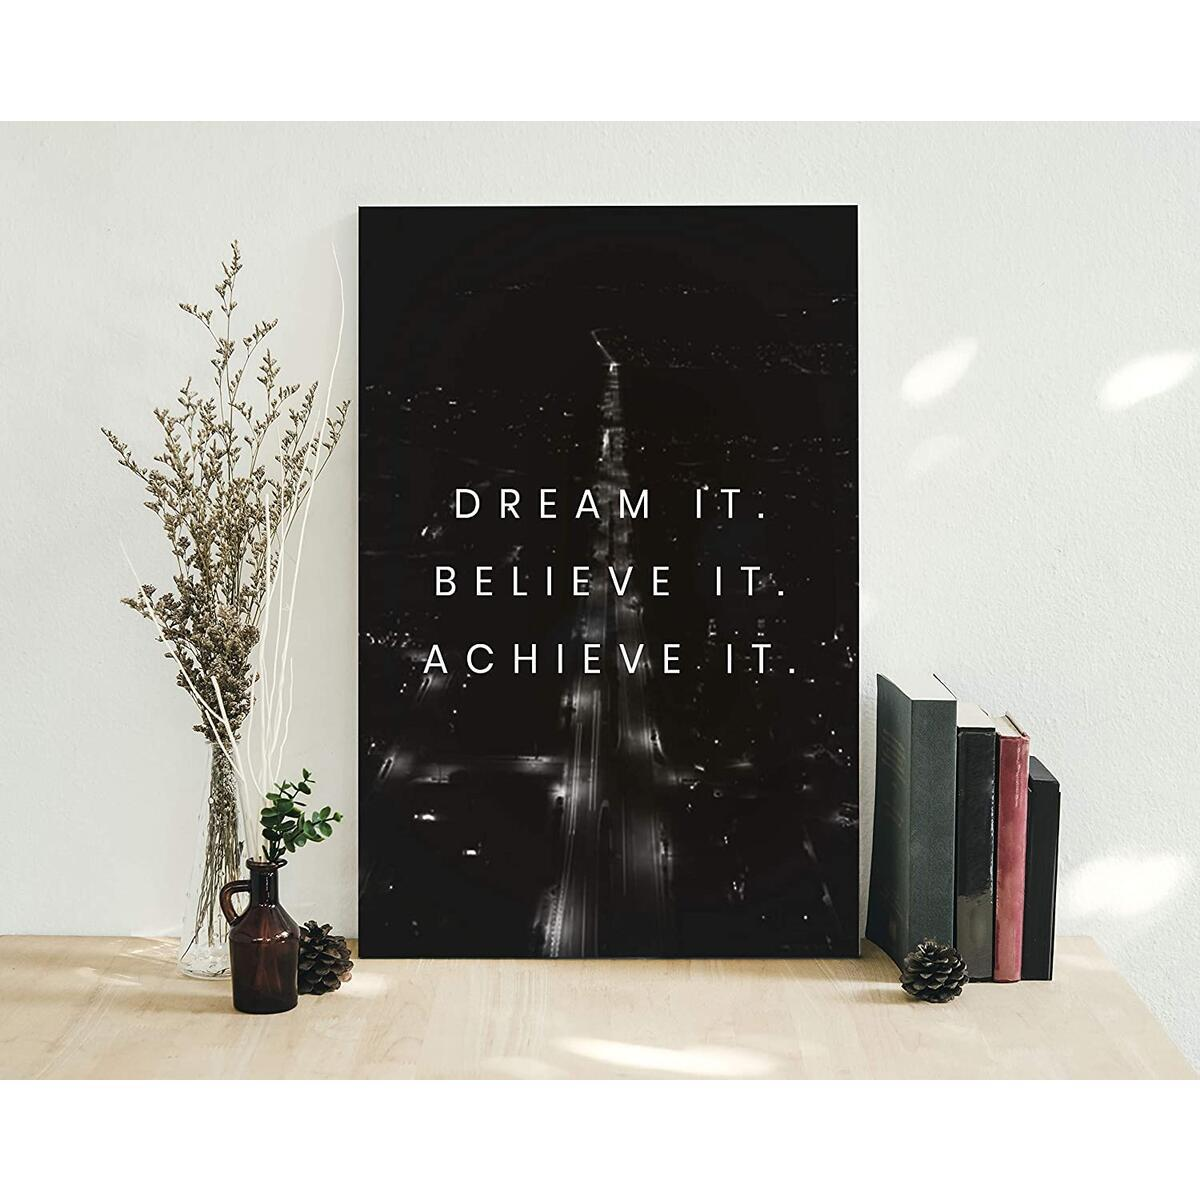 Dream It| 12x18in| Motivational Inspirational Wall Art Canvas, Inspirational Wall Art for Office, Motivational art For Office, Artwork Décor Inspiring Entrepreneur Ready to Hang